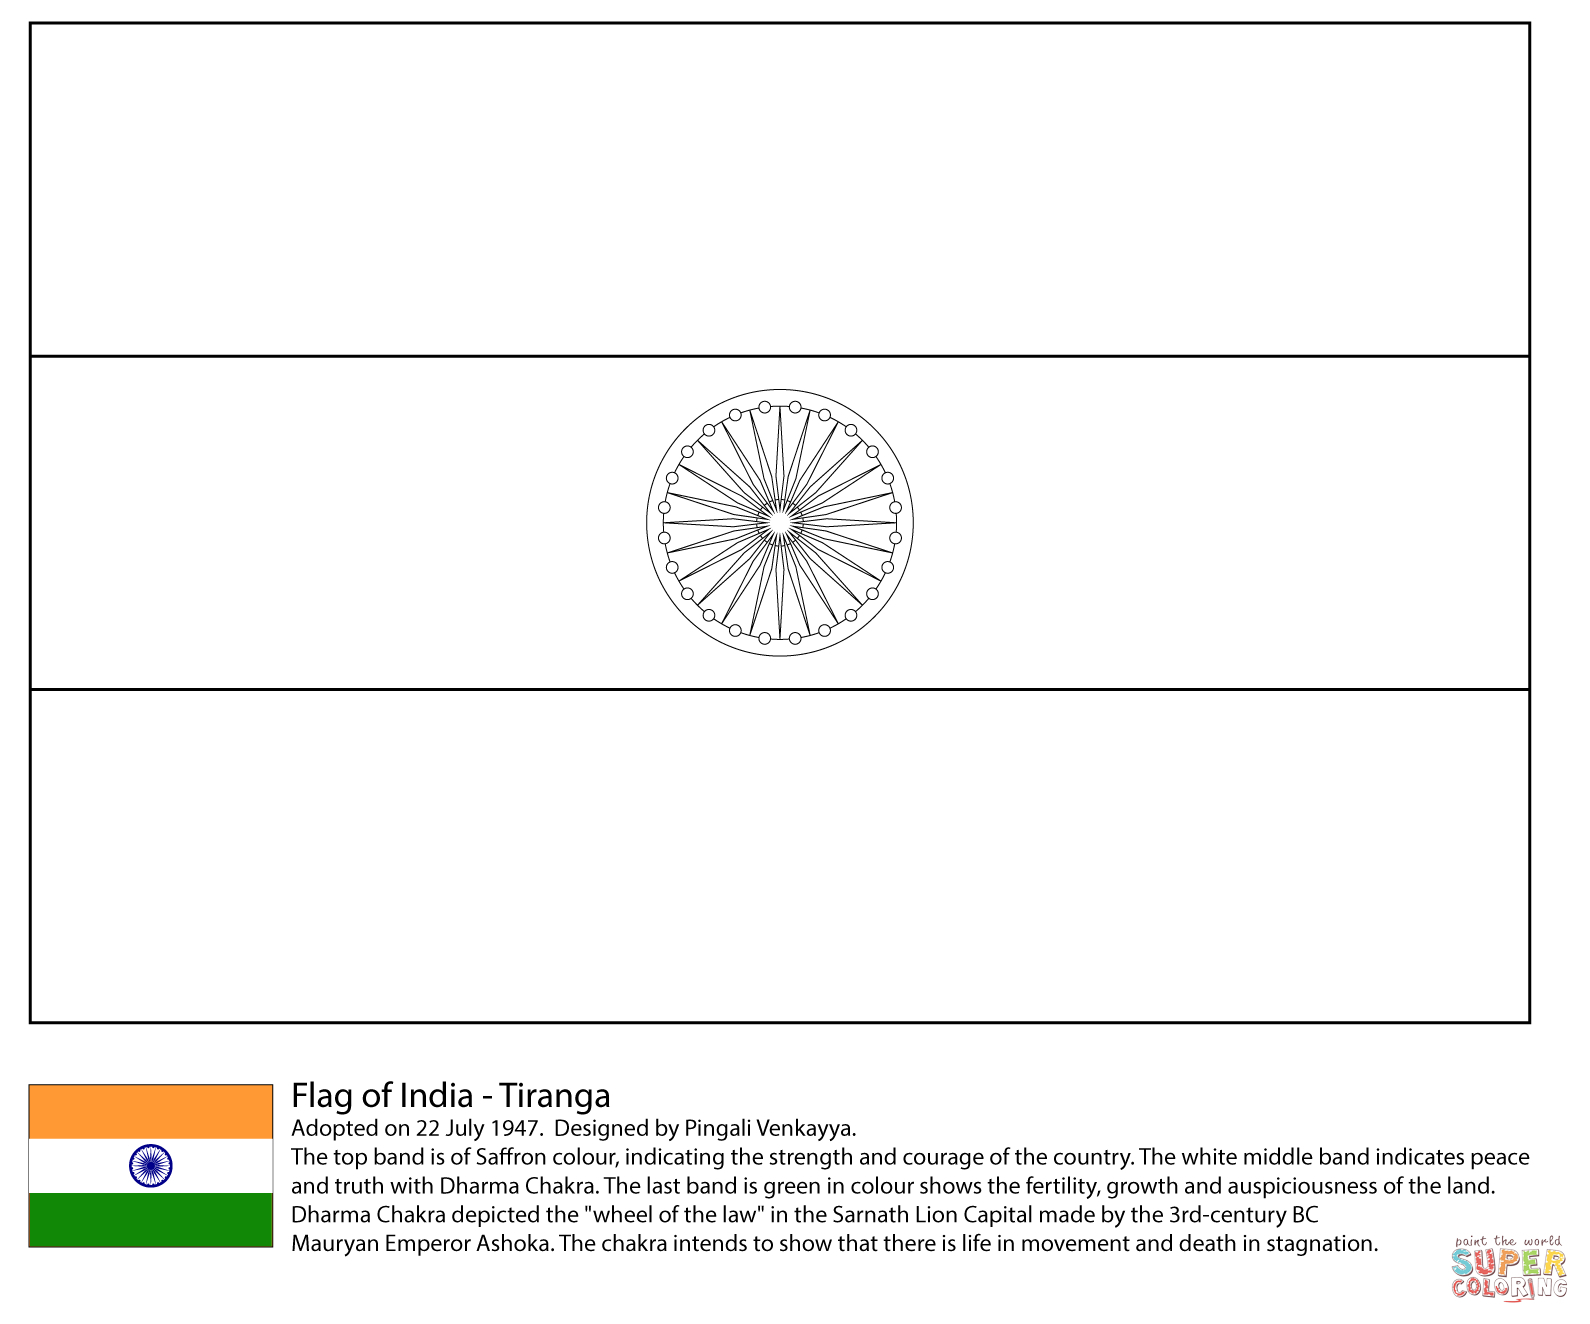 Coloring Pages : Coloring Pages China Flag Page Of Free Printable - Free Printable Scottish Flag